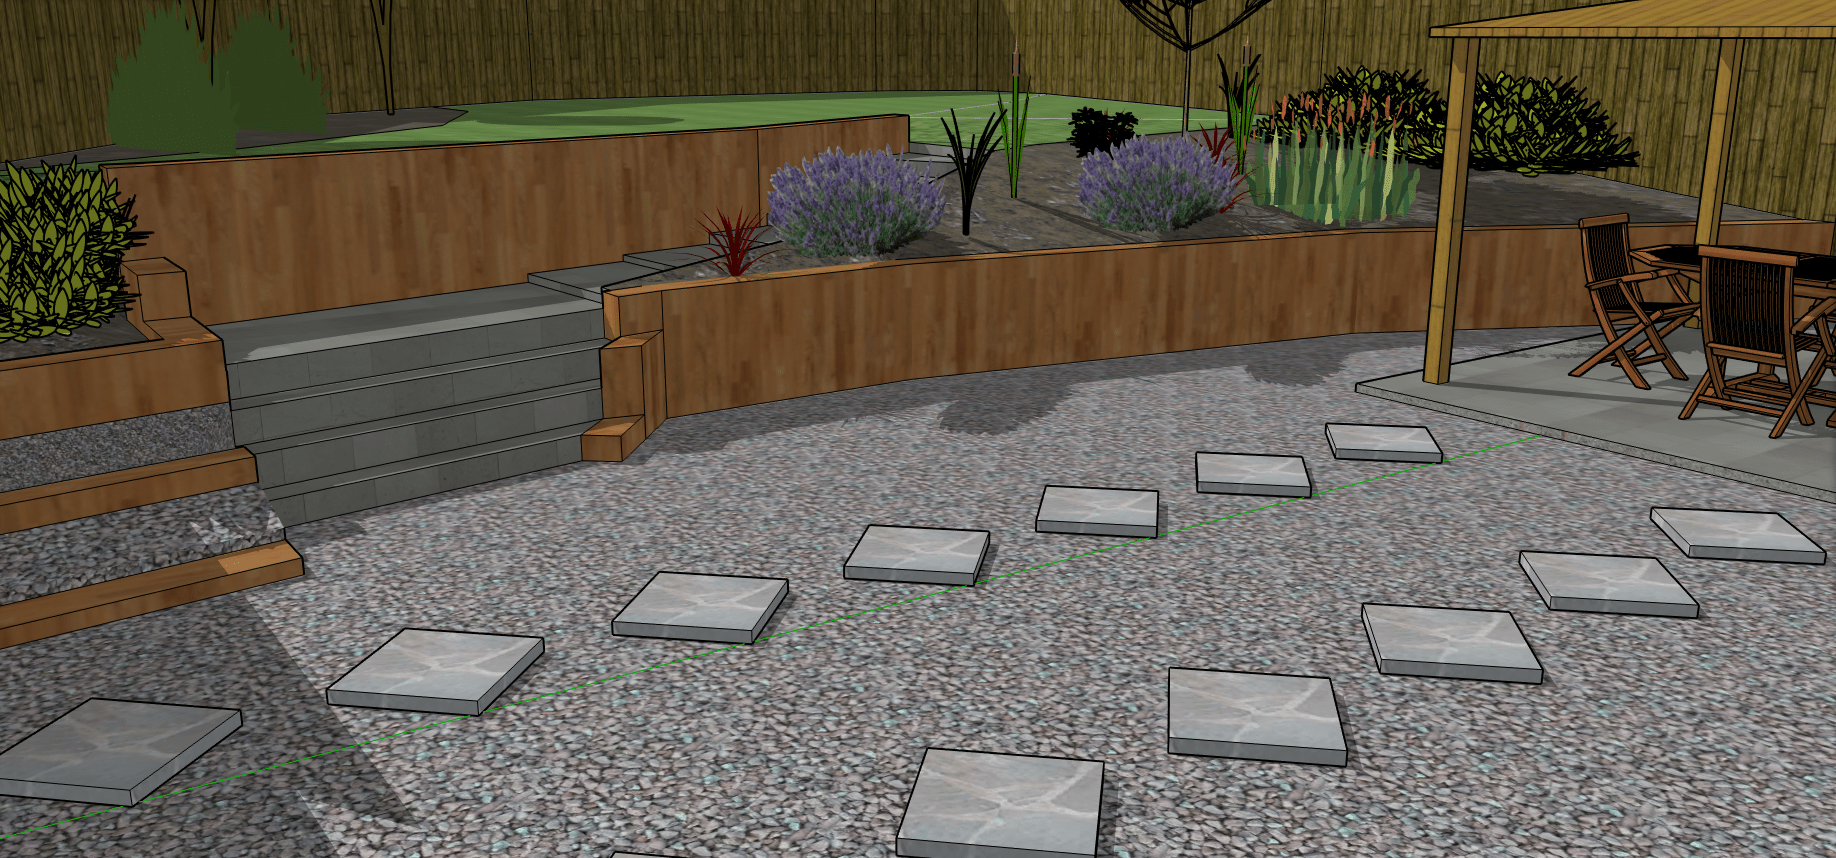 garden design. Low shot of tiered back garden with wooden sleeper retaining walls